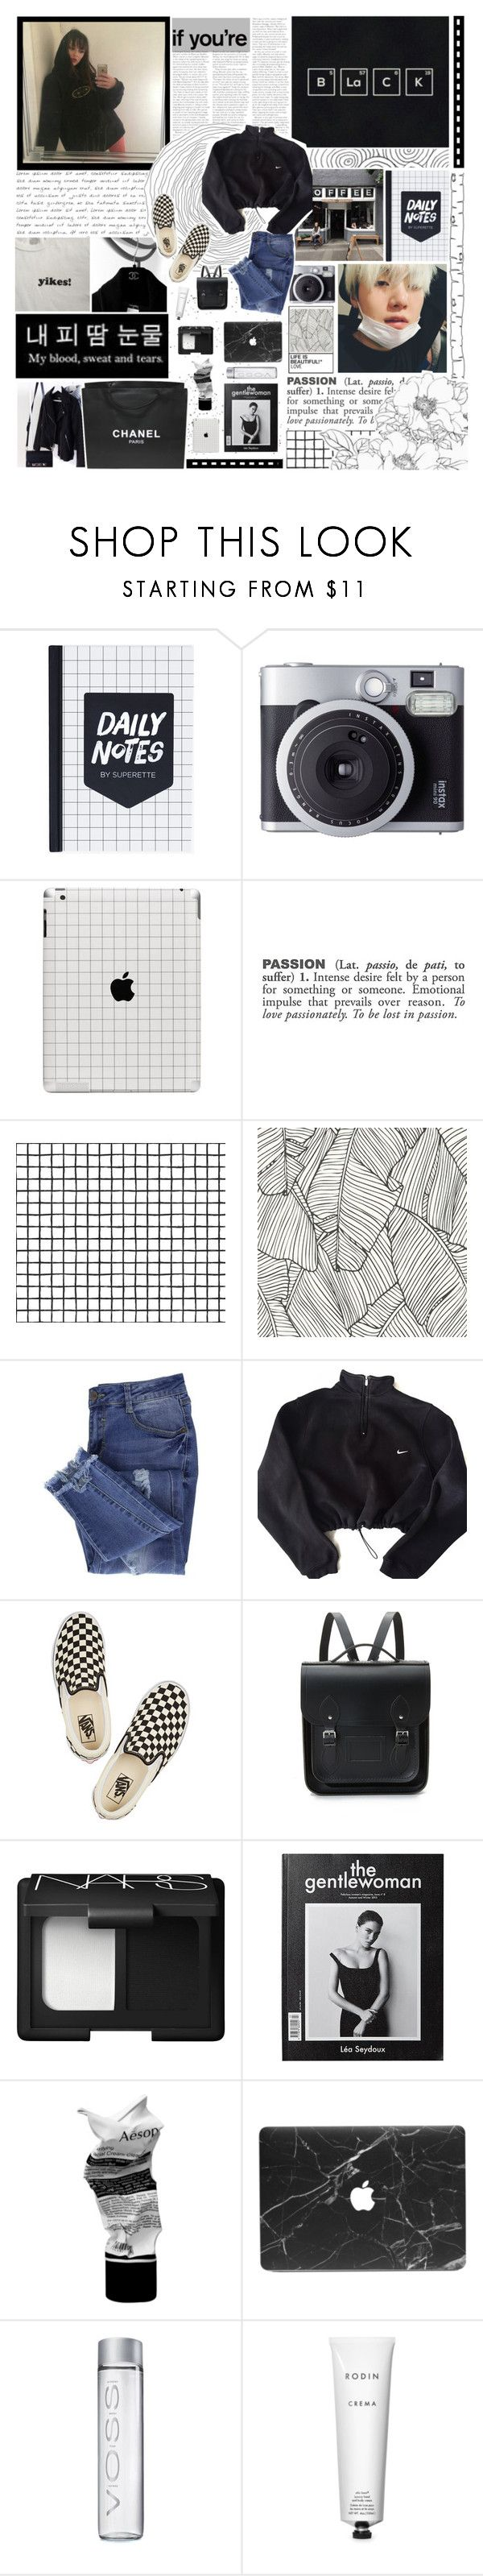 """""""★; every single day is a repetition of ctrl+c, ctrl+v"""" by ecclxsiastes ❤ liked on Polyvore featuring Chanel, Fujifilm, ADZif, Essie, NIKE, Vans, The Cambridge Satchel Company, NARS Cosmetics, Aesop and Rodin"""